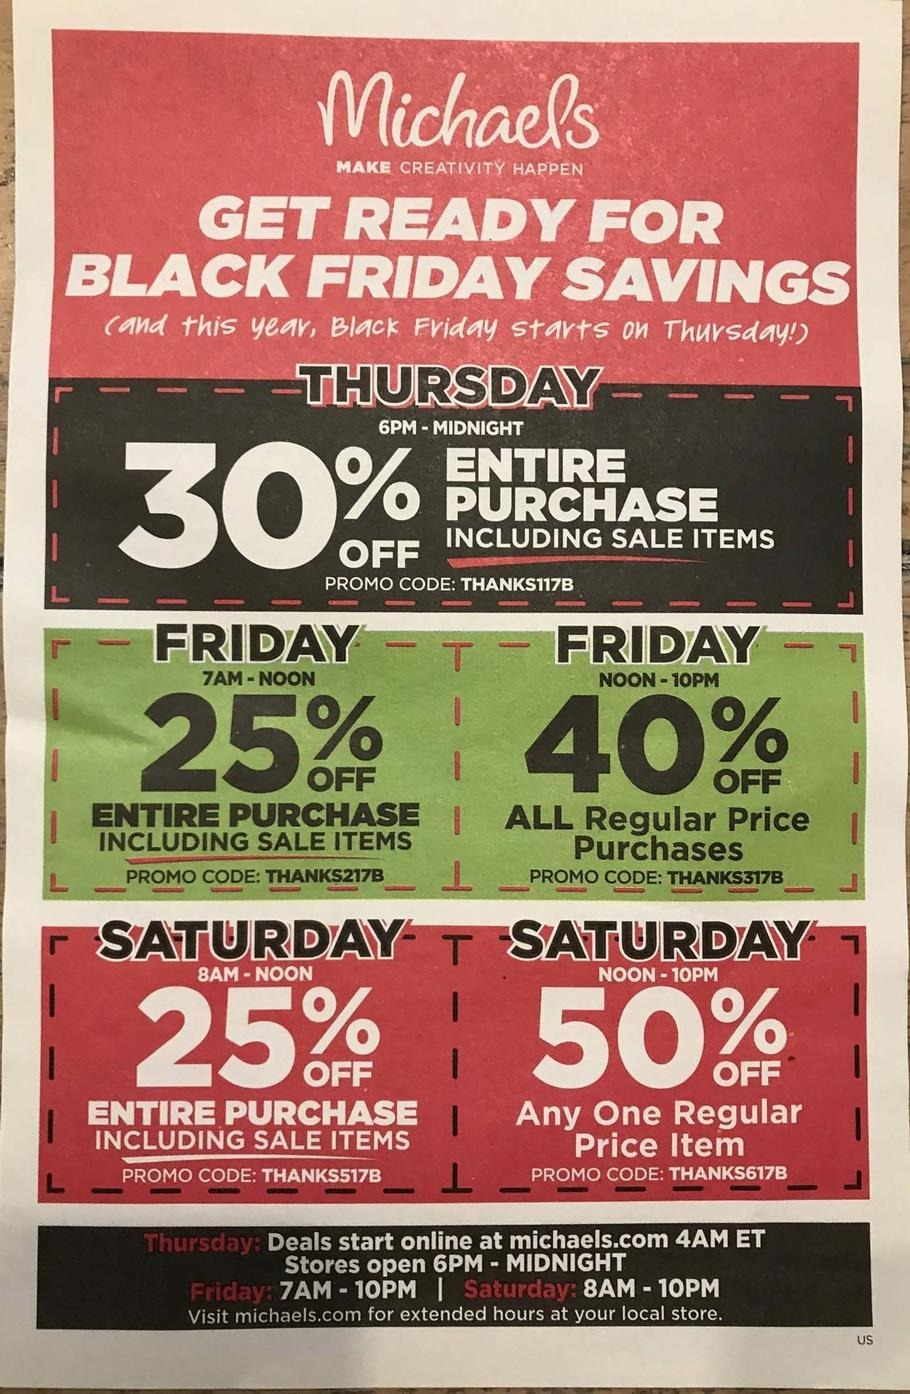 Michaels Black Friday 2018 Ads and Deals